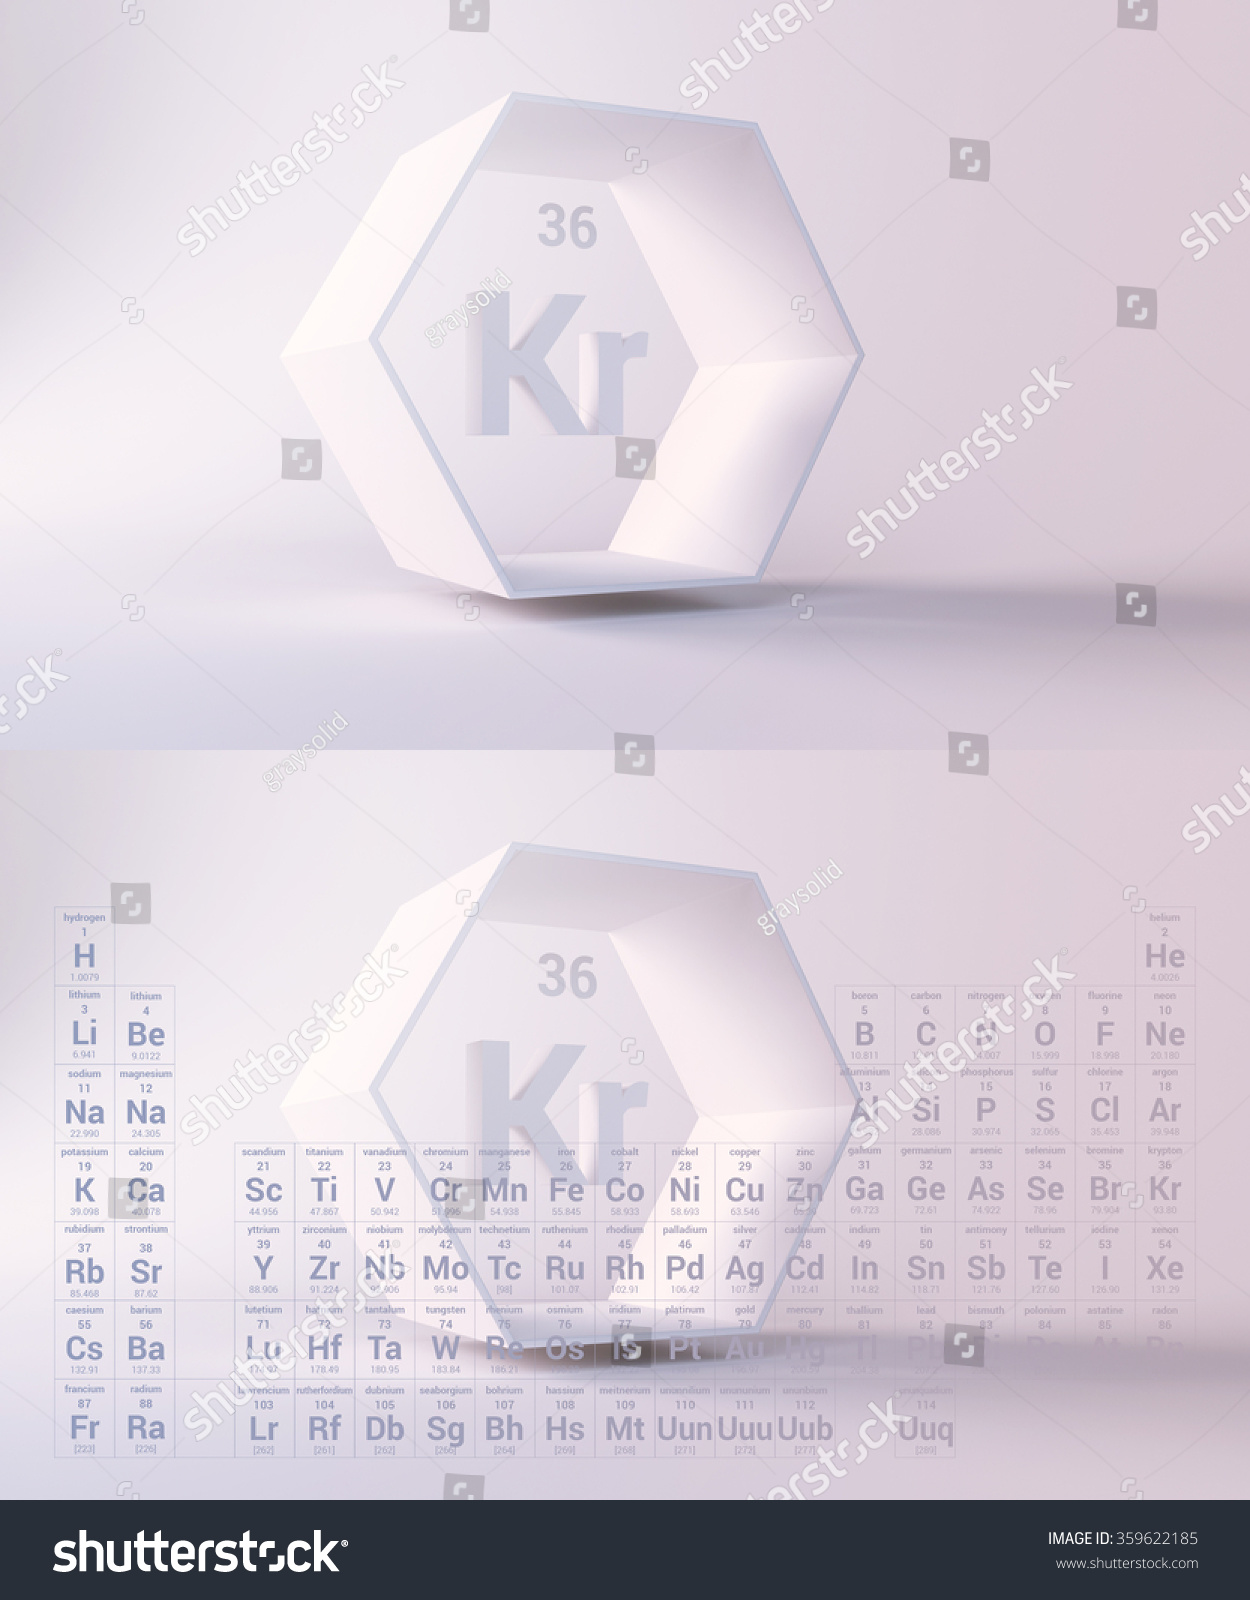 Kr periodic table image collections periodic table images kr on the periodic table cooper wiring diagrams periodic table krypton gallery periodic table images stock gamestrikefo Image collections